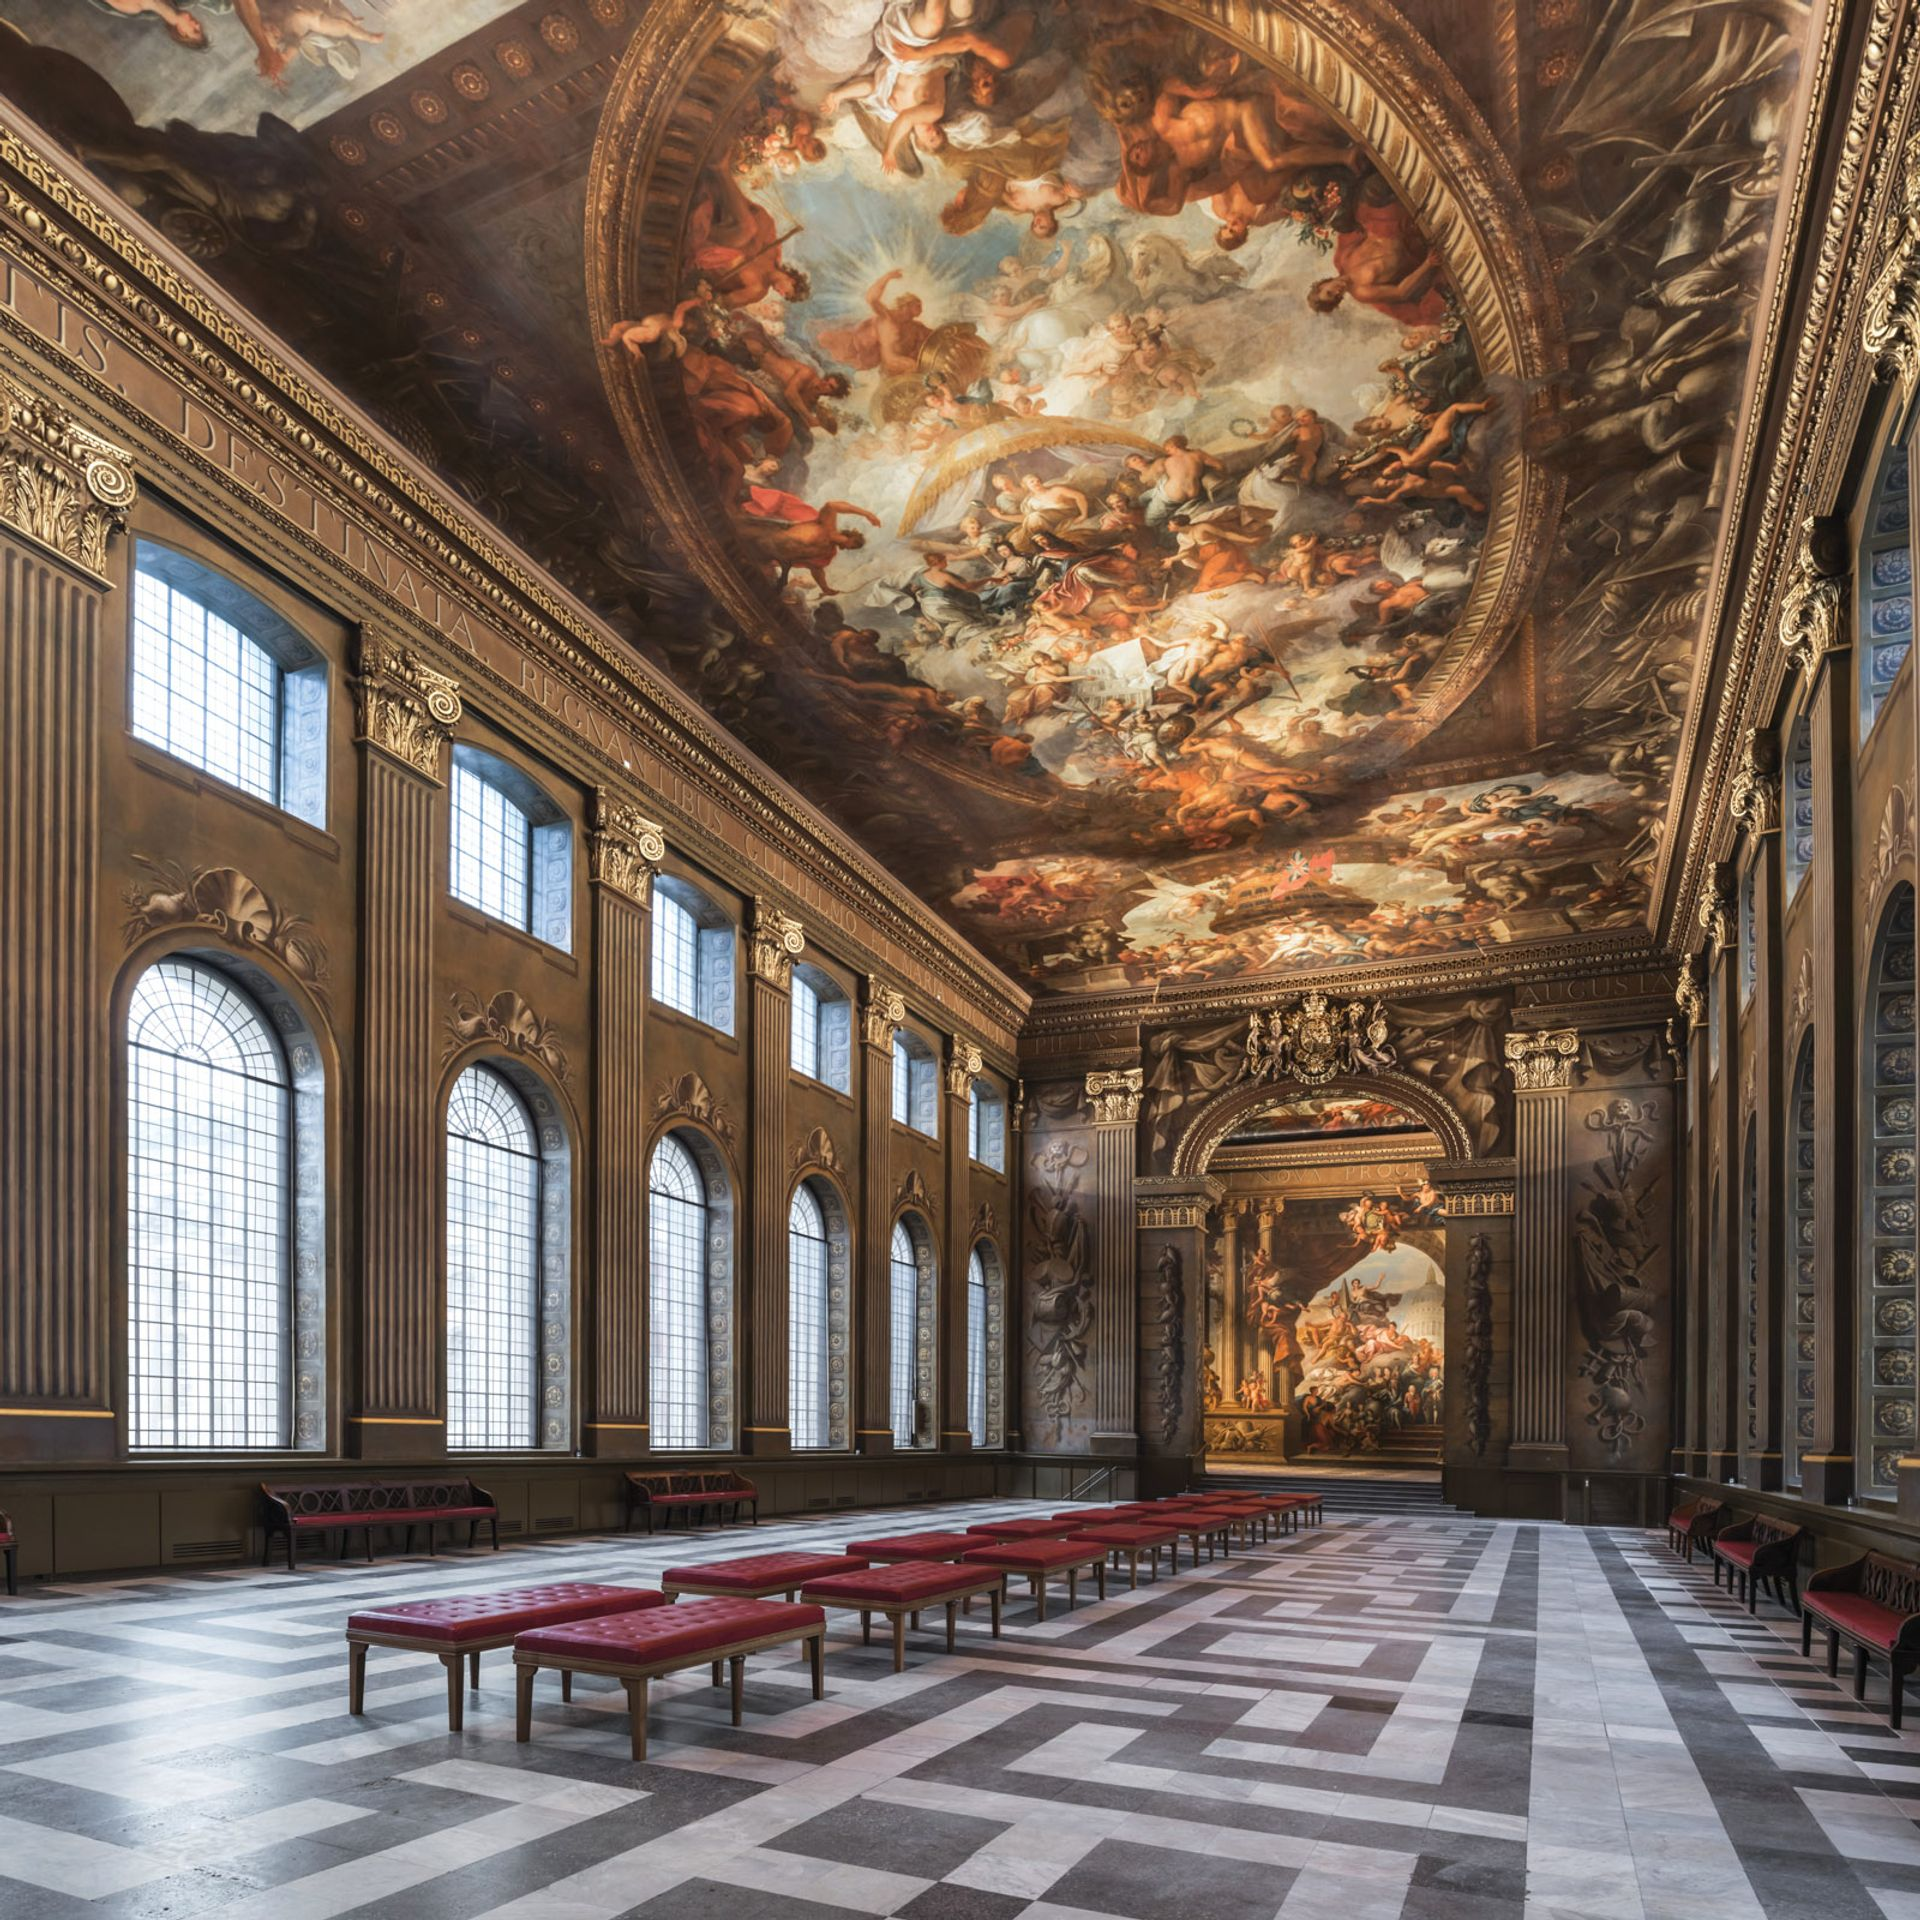 Lie back and think of Nelson, whose body lay in state in the Painted Hall after his victory and death at the Battle of Trafalgar Photo: Nikhilesh Haval